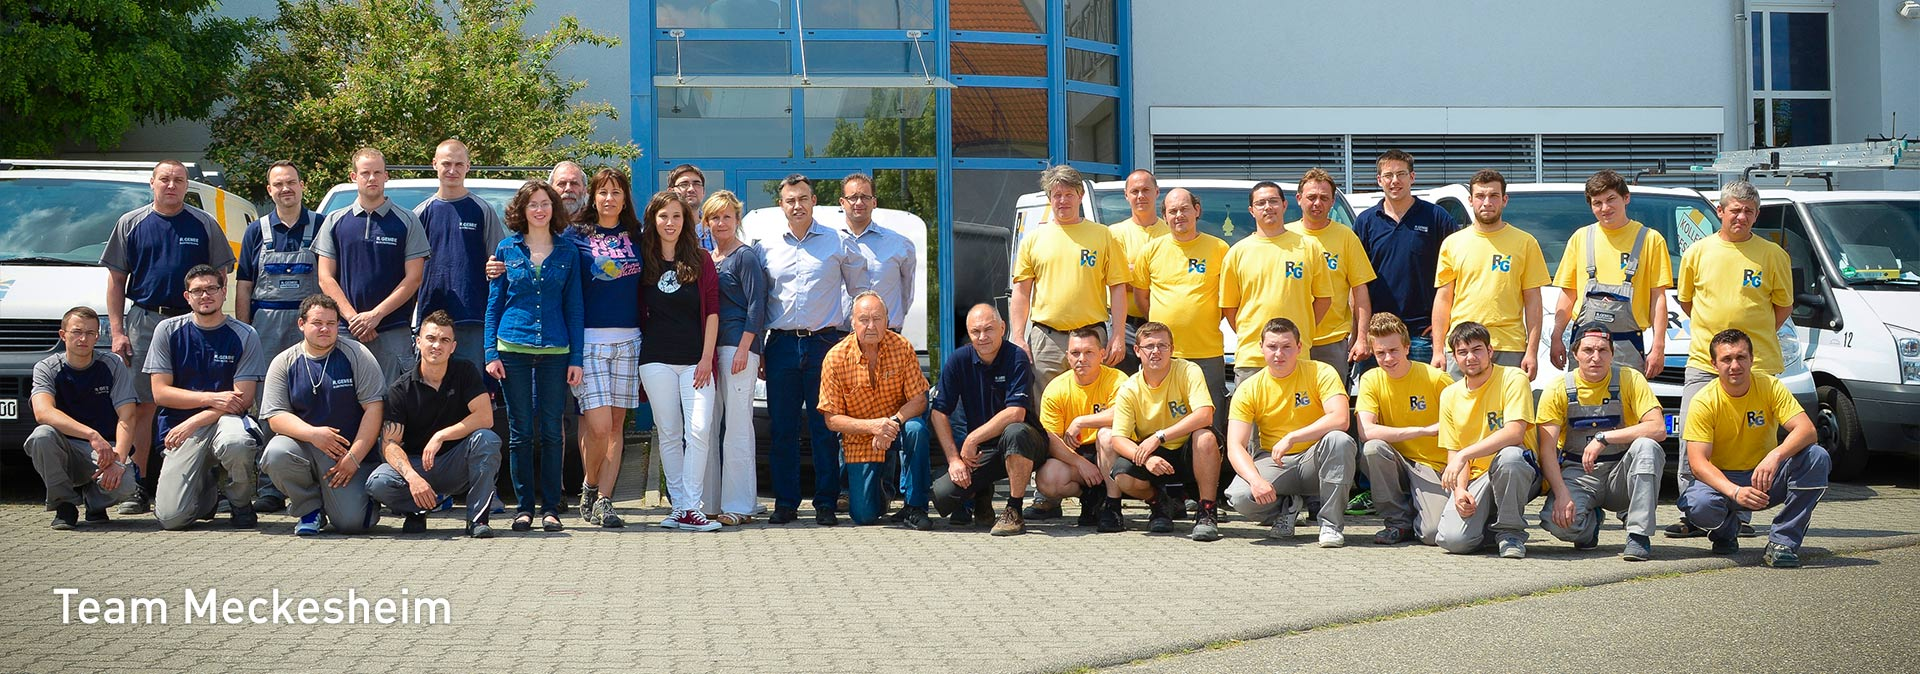 Gembe Team Meckesheim